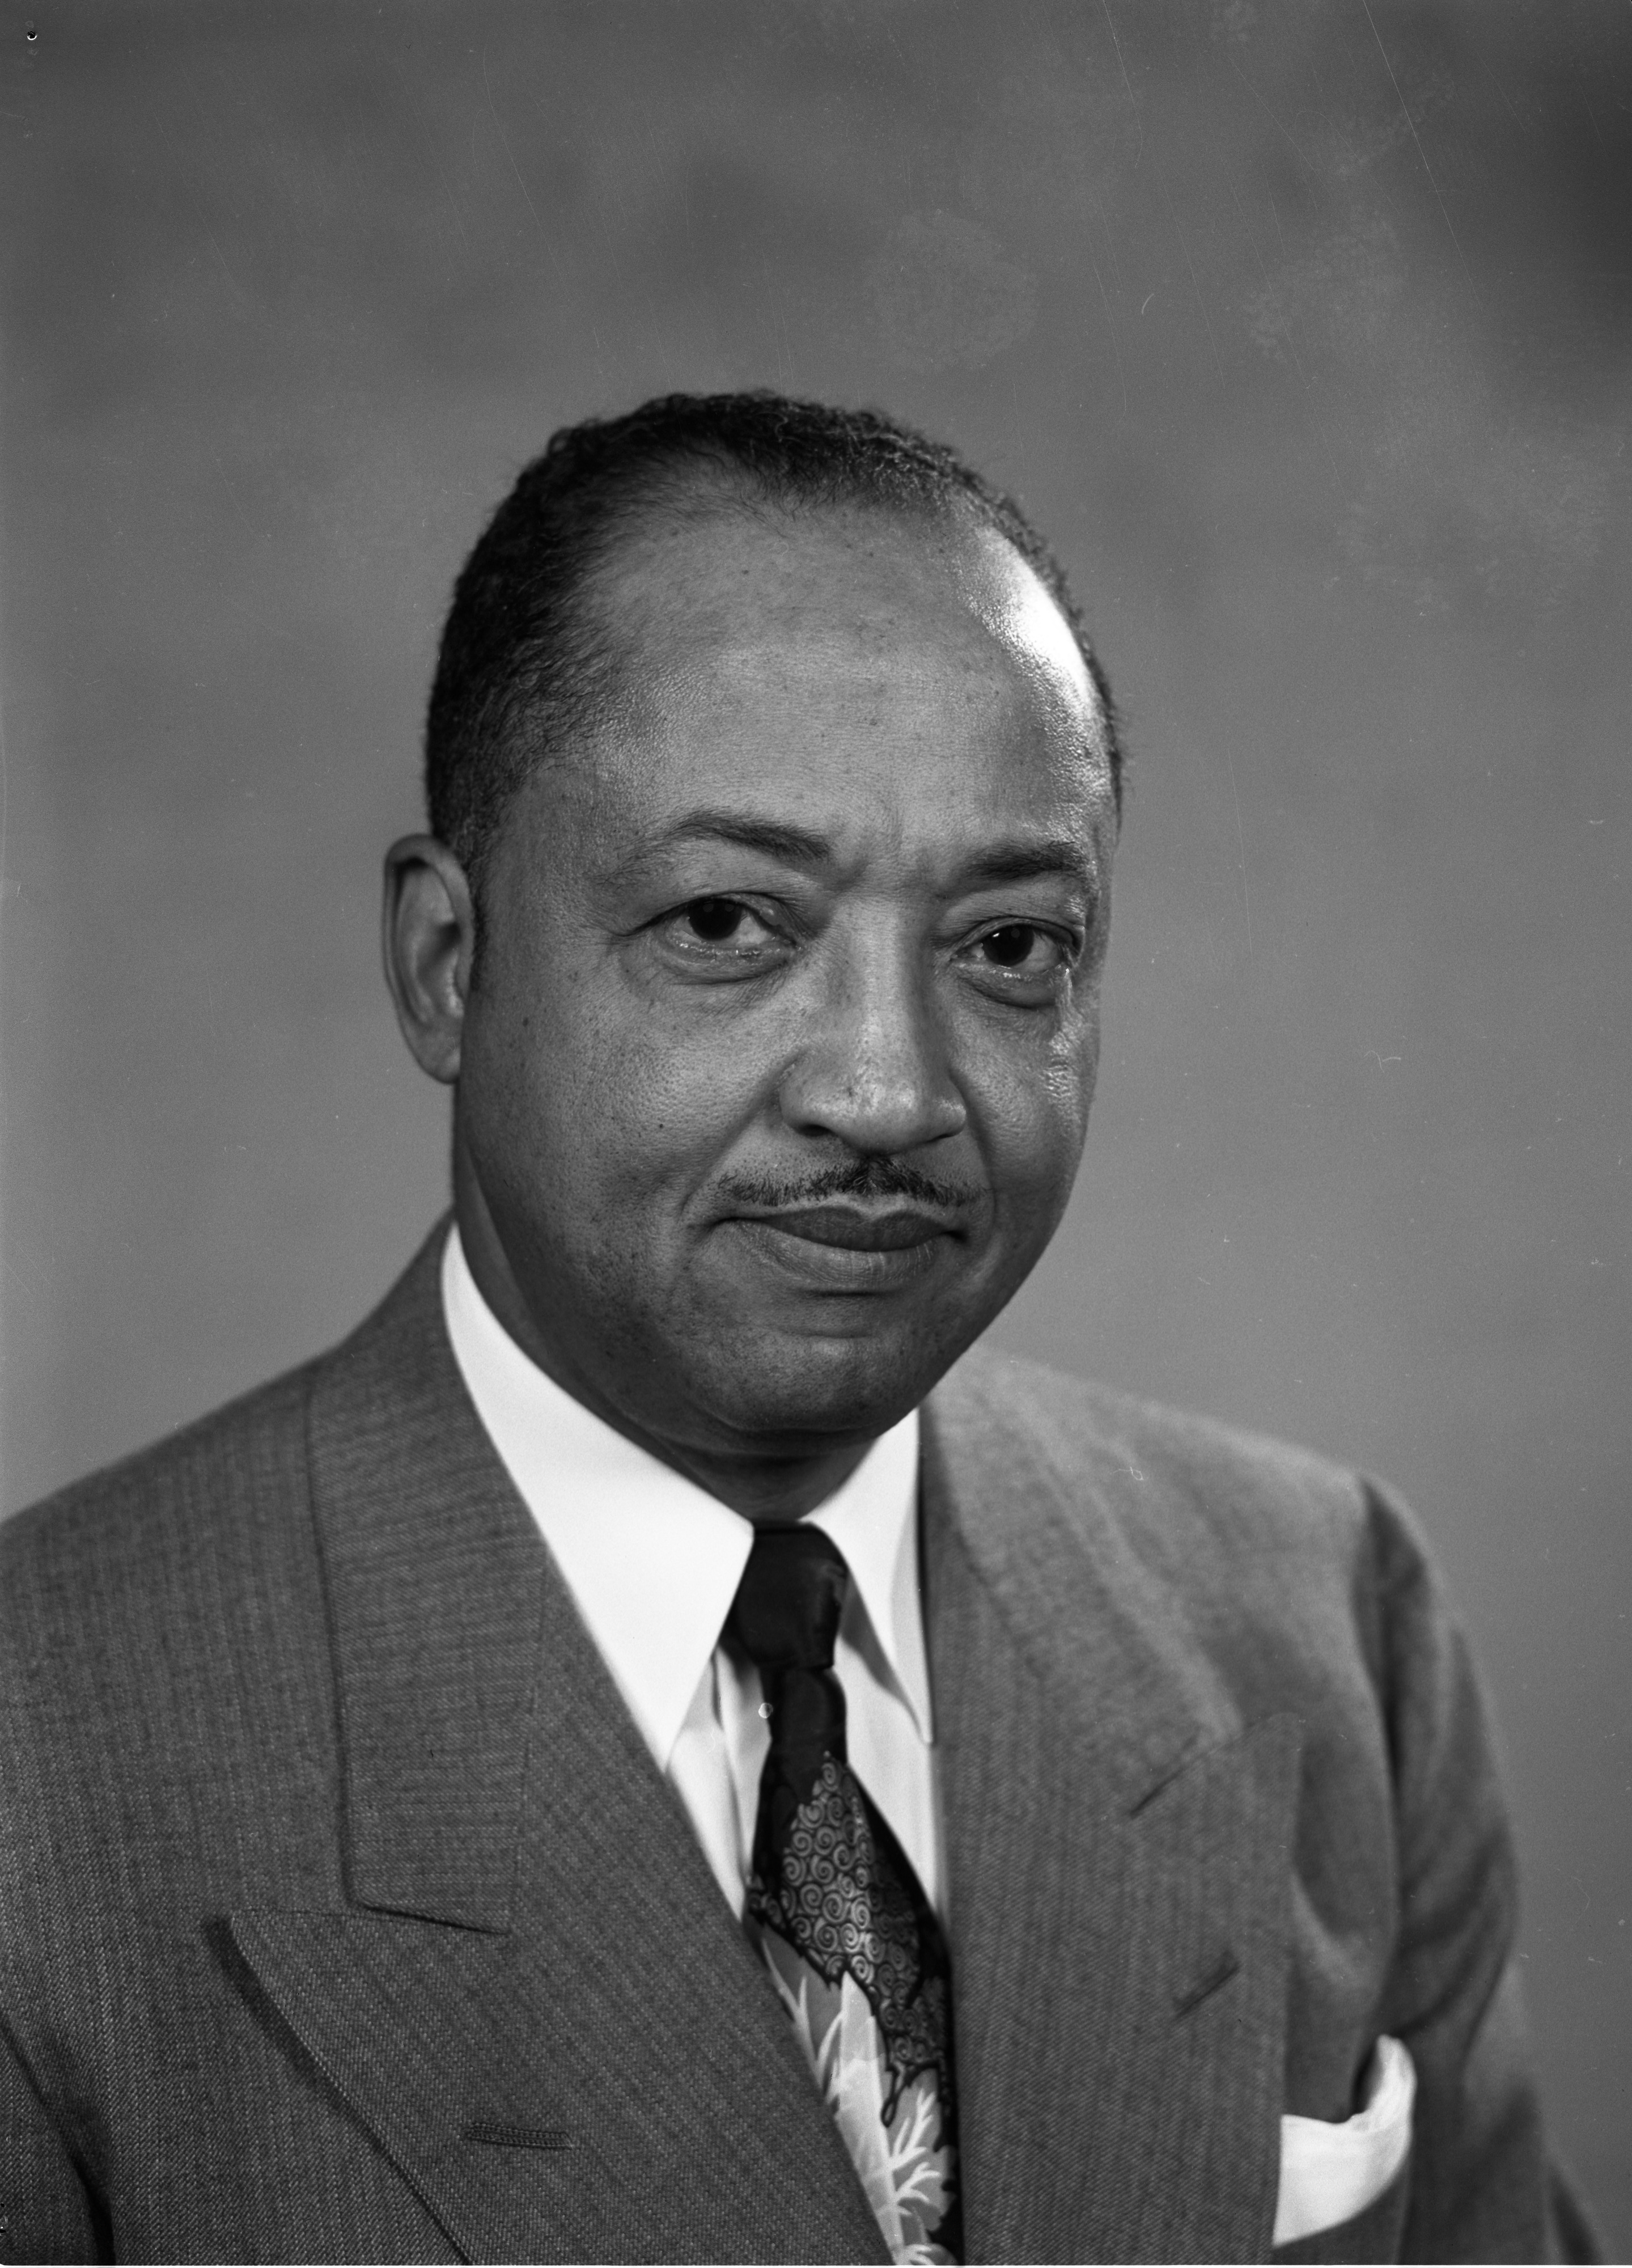 Dr. Lawrence C. Perry, May 1954 image